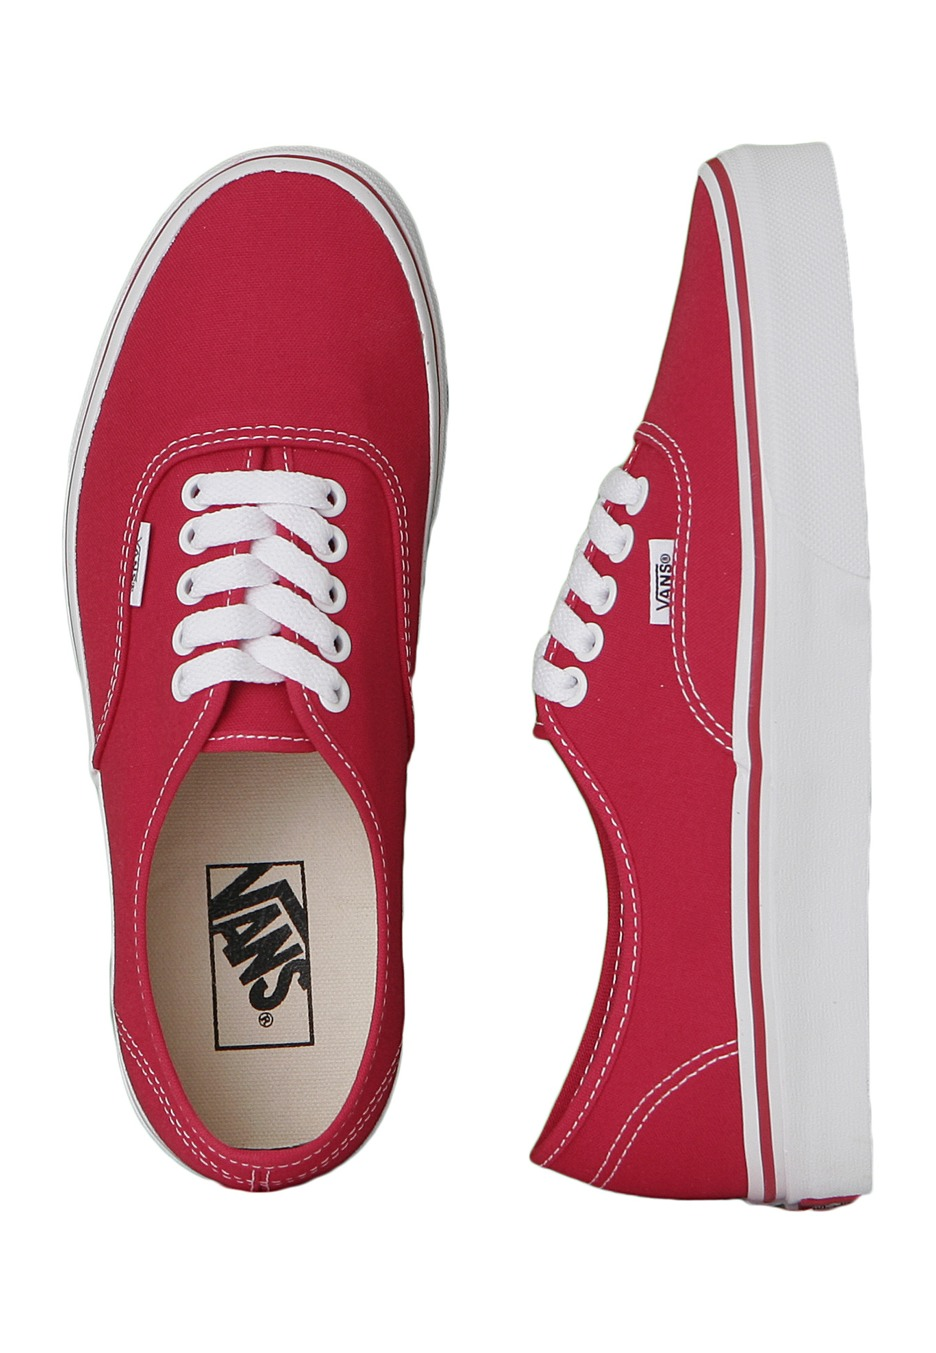 aabe66b30d Vans - Authentic Red - Girl Shoes - Impericon.com UK